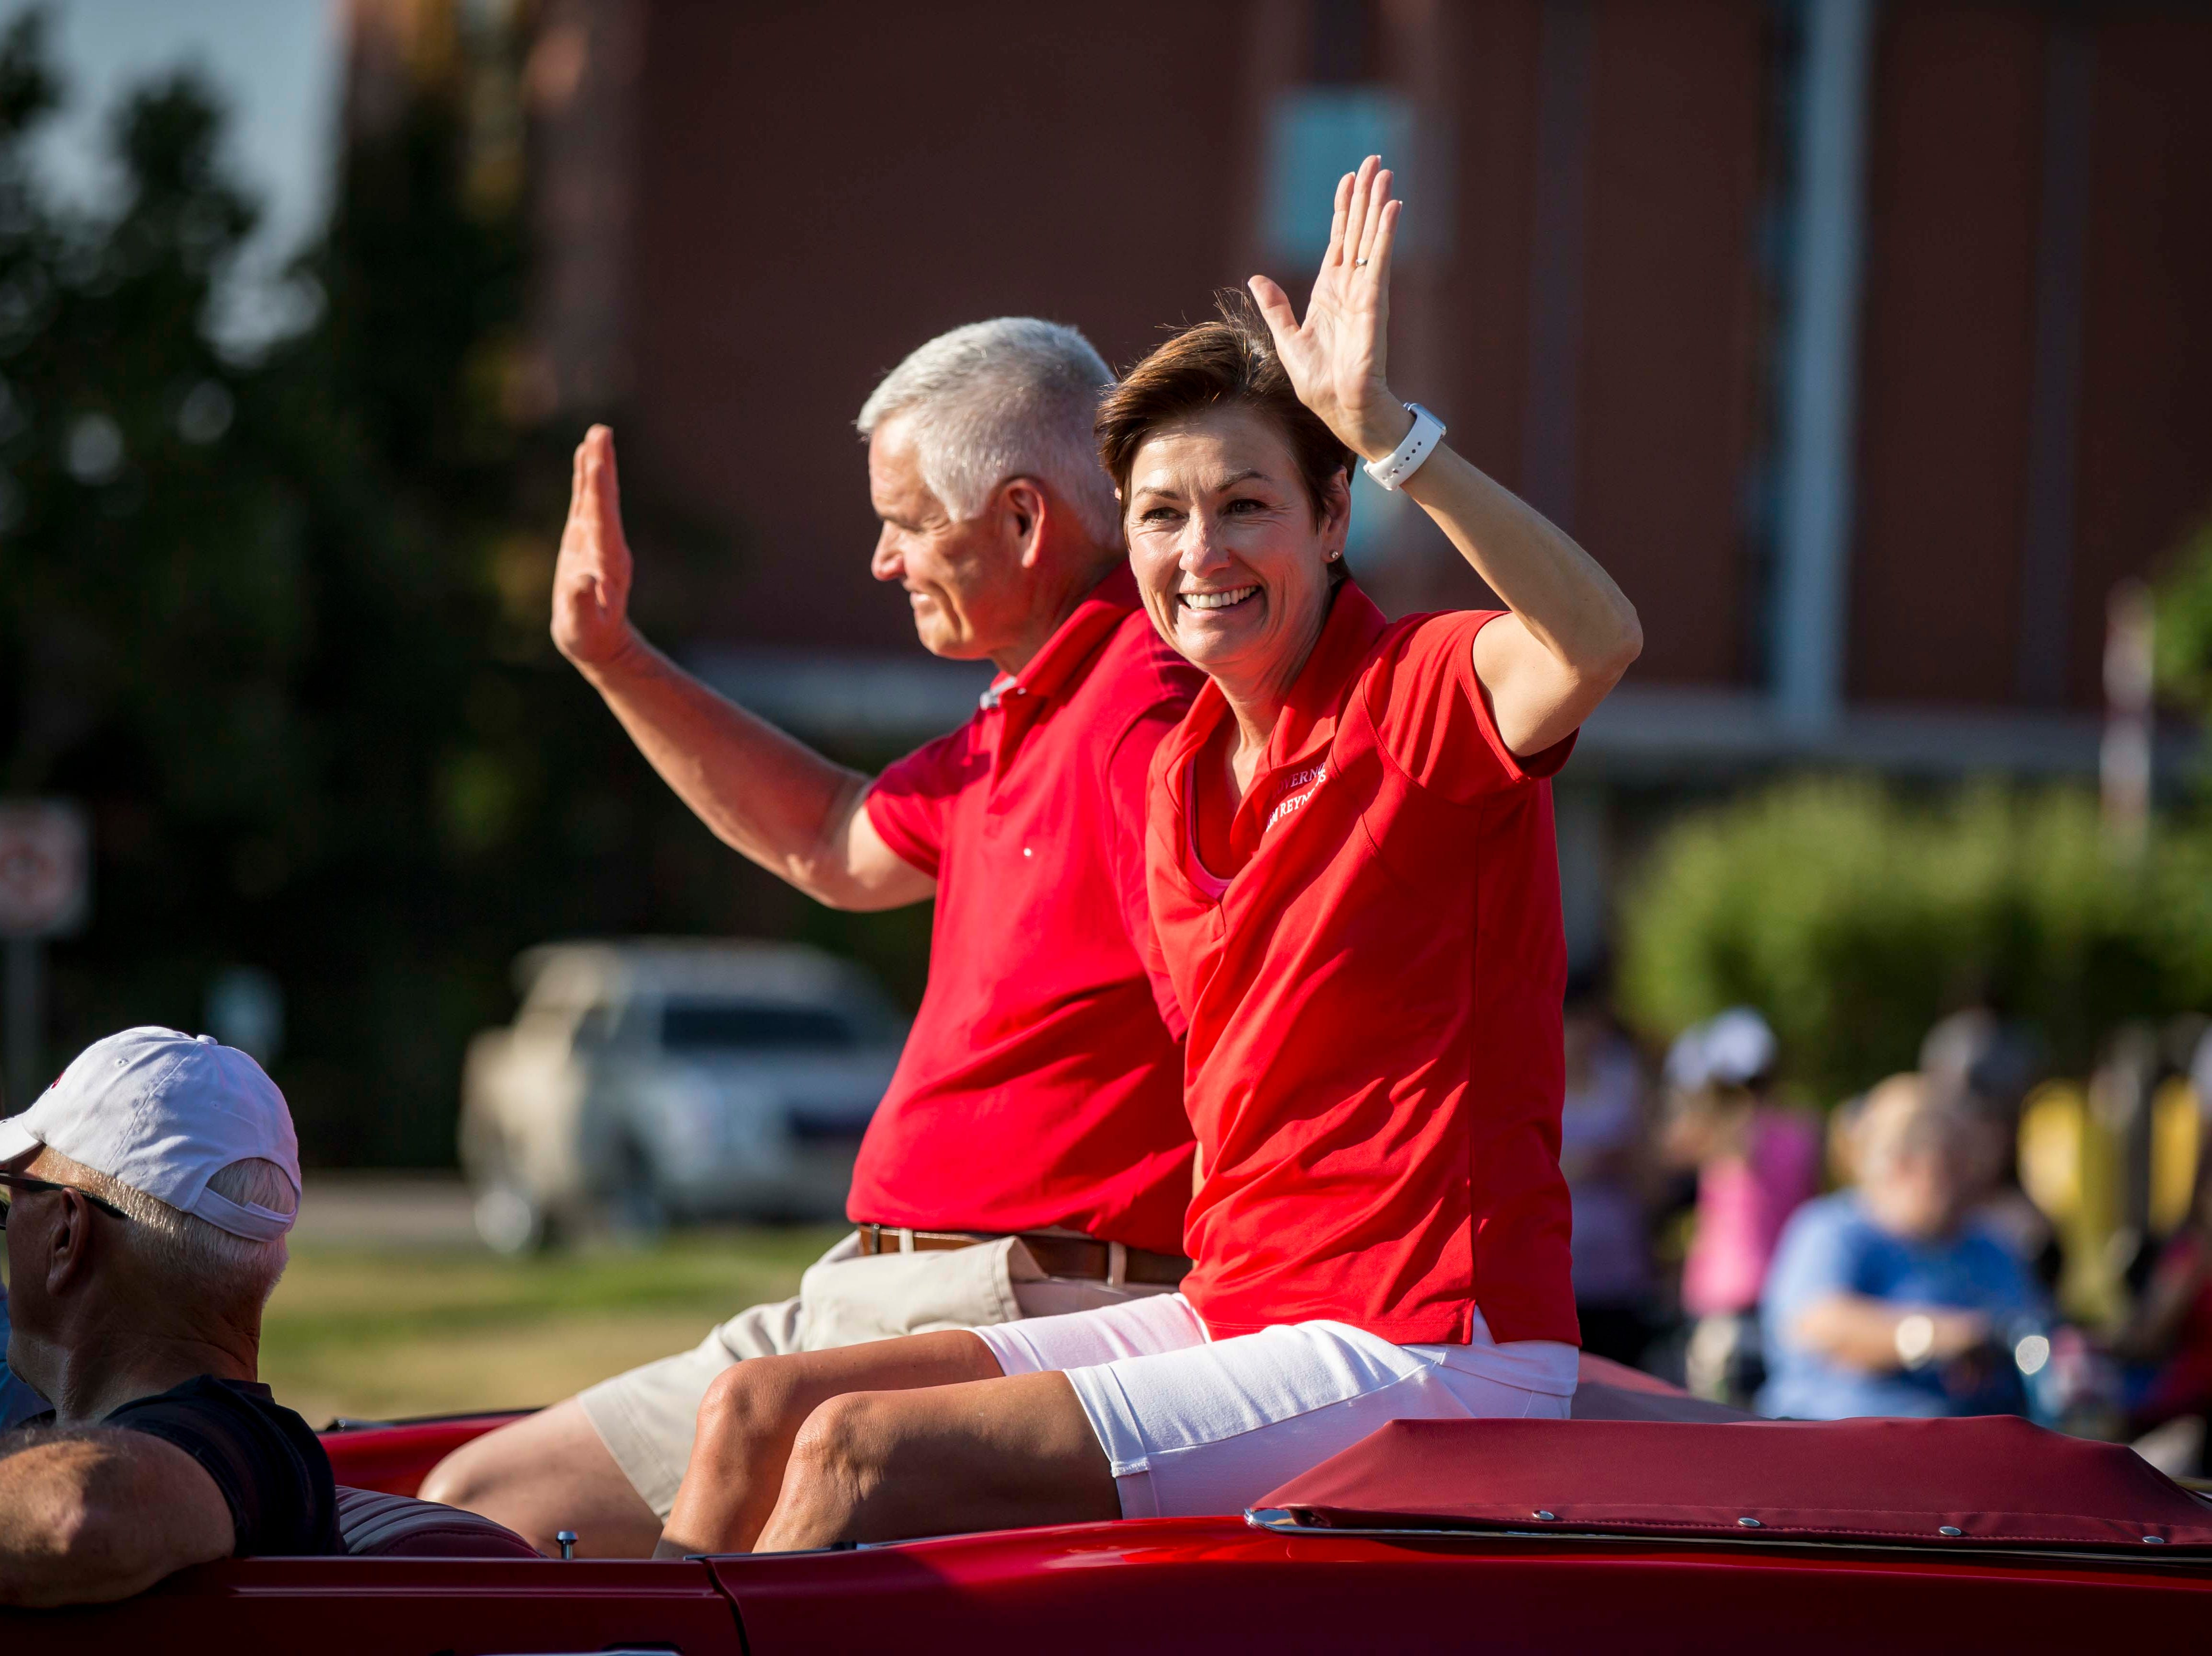 Iowa Gov. Kim Reynolds and her husband Kevin ride in the 2018 Iowa State Fair parade from the Statehouse to downtown Des Moines Wednesday, Aug. 8, 2018. The Iowa State Fair runs from Aug. 9Ð19.